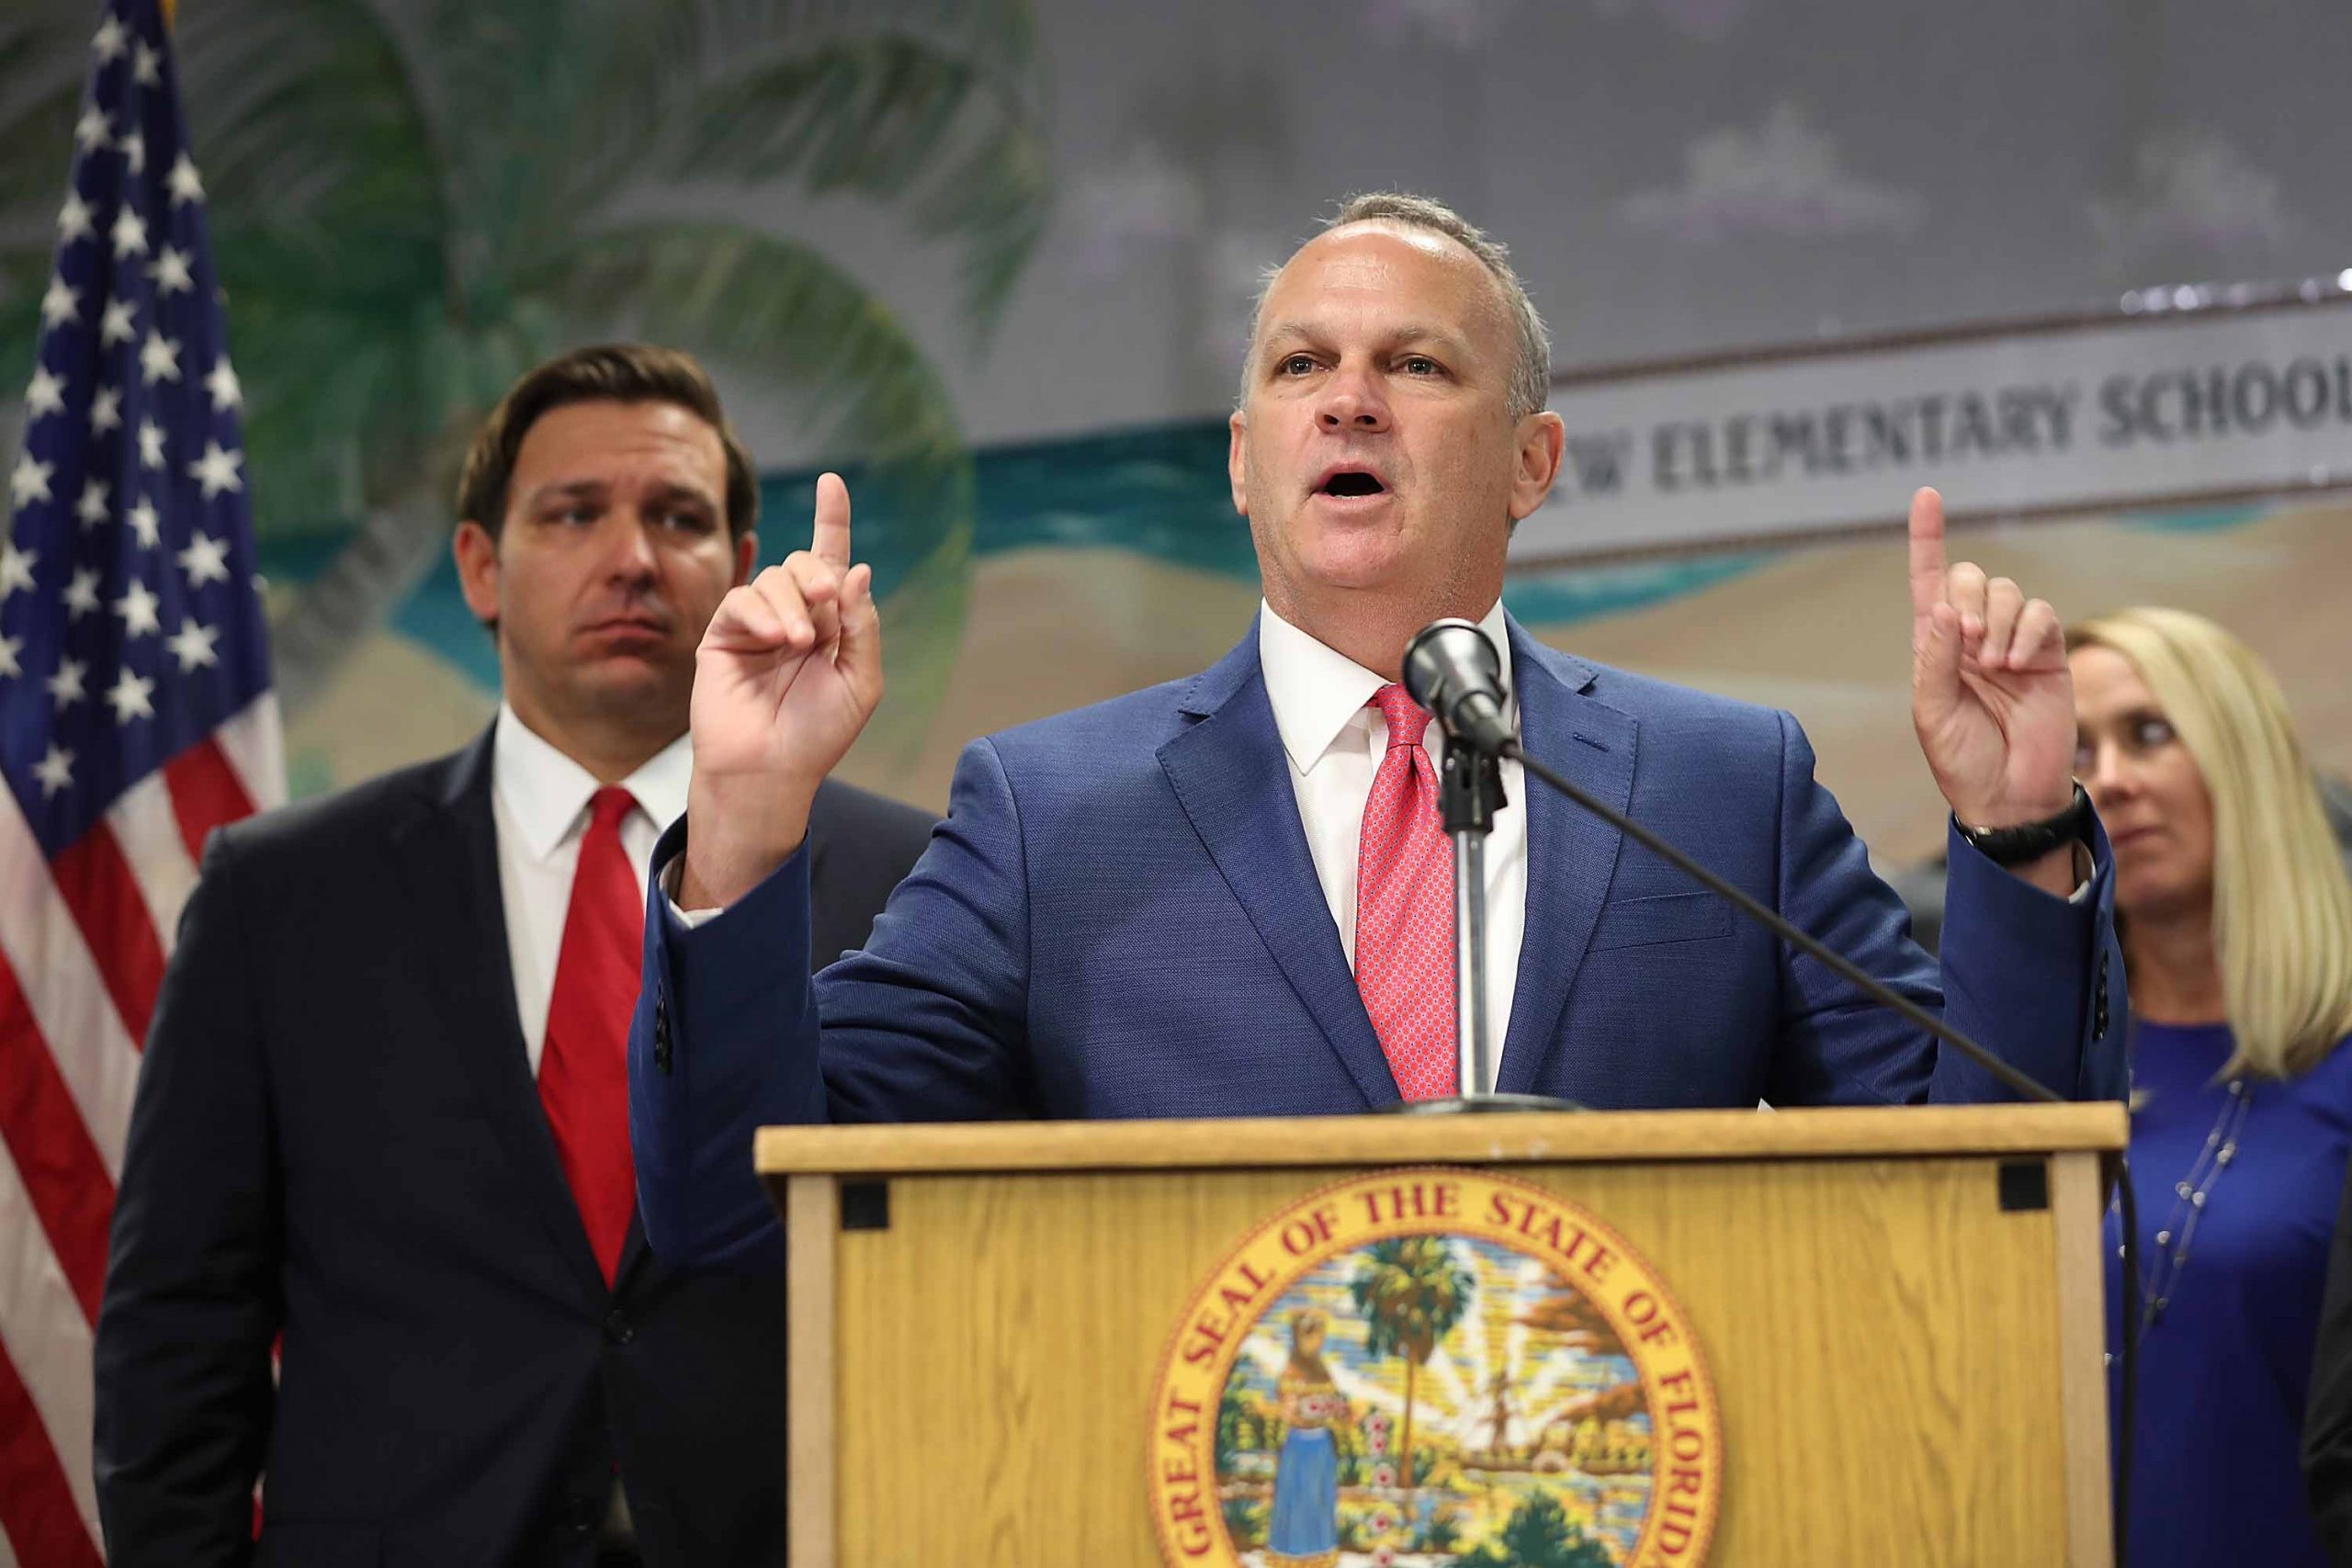 Florida threatens to remove school officials who disobey DeSantis